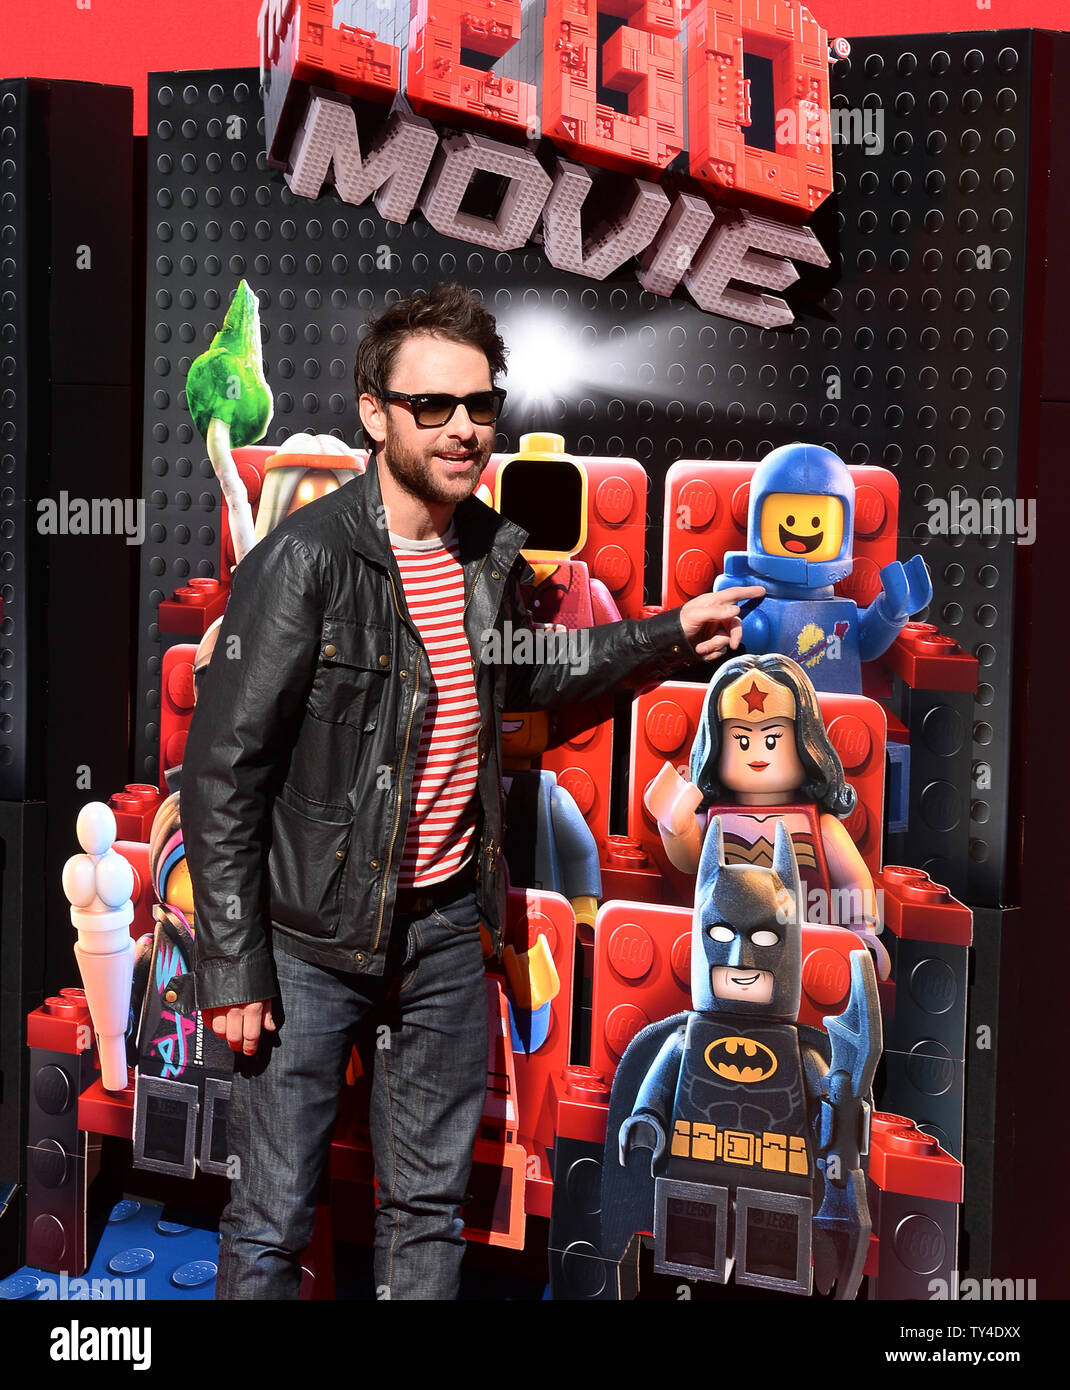 Page 2 The Lego Movie 2014 High Resolution Stock Photography And Images Alamy